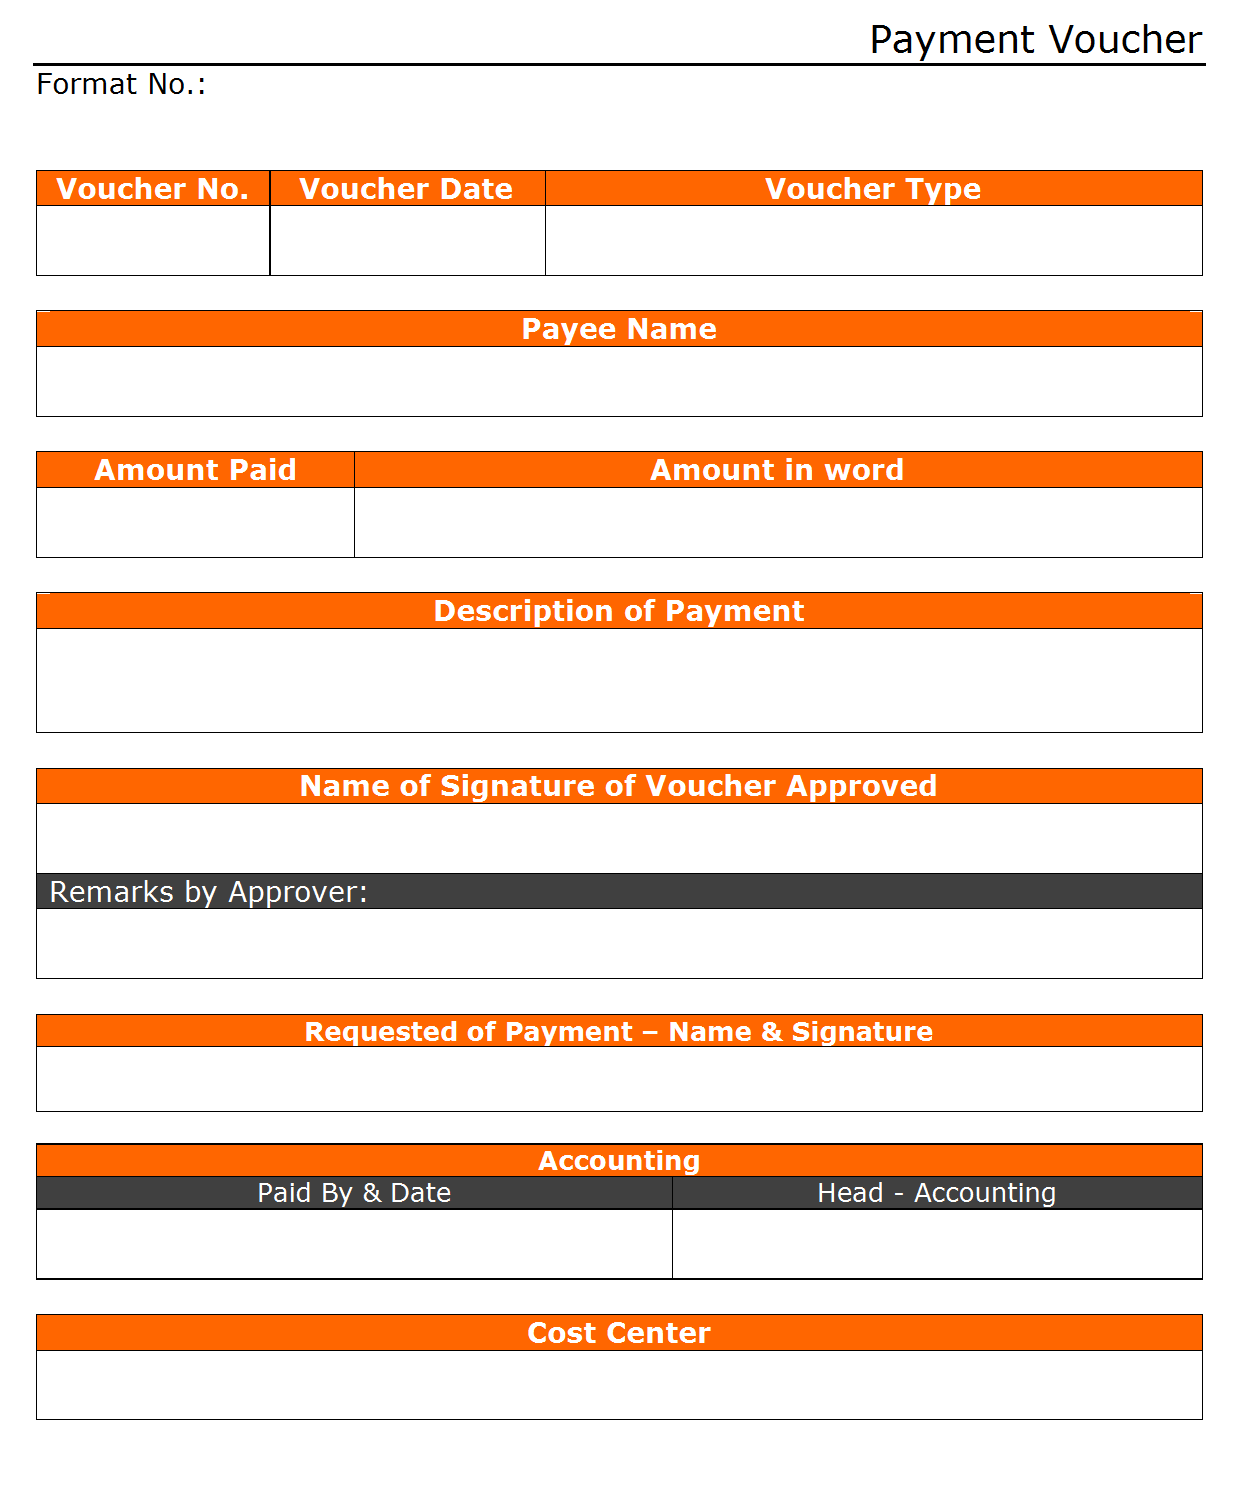 Payment Voucher Format PG 1 | Examples ...  Example Of A Voucher